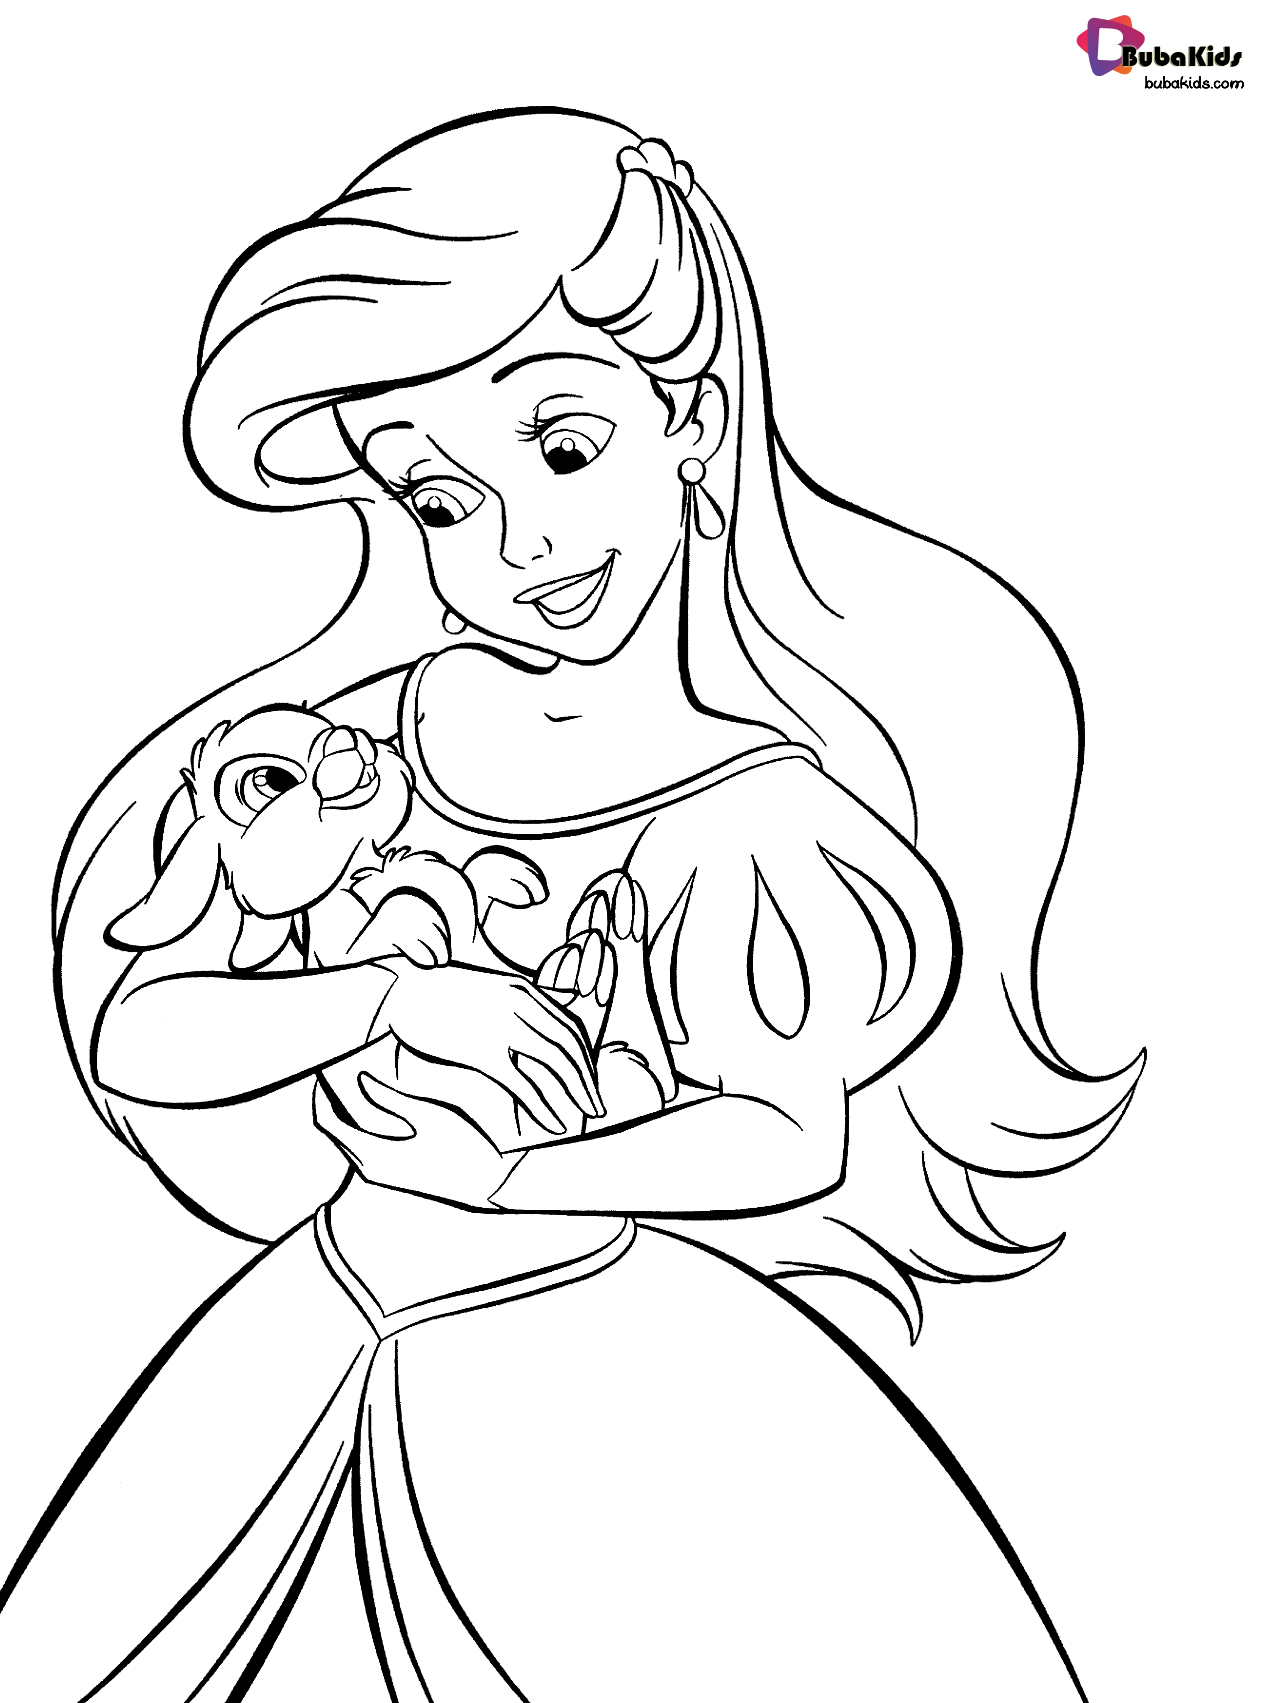 coloring pages for girls disney disney coloring pages for girl timeless miraclecom pages for girls coloring disney